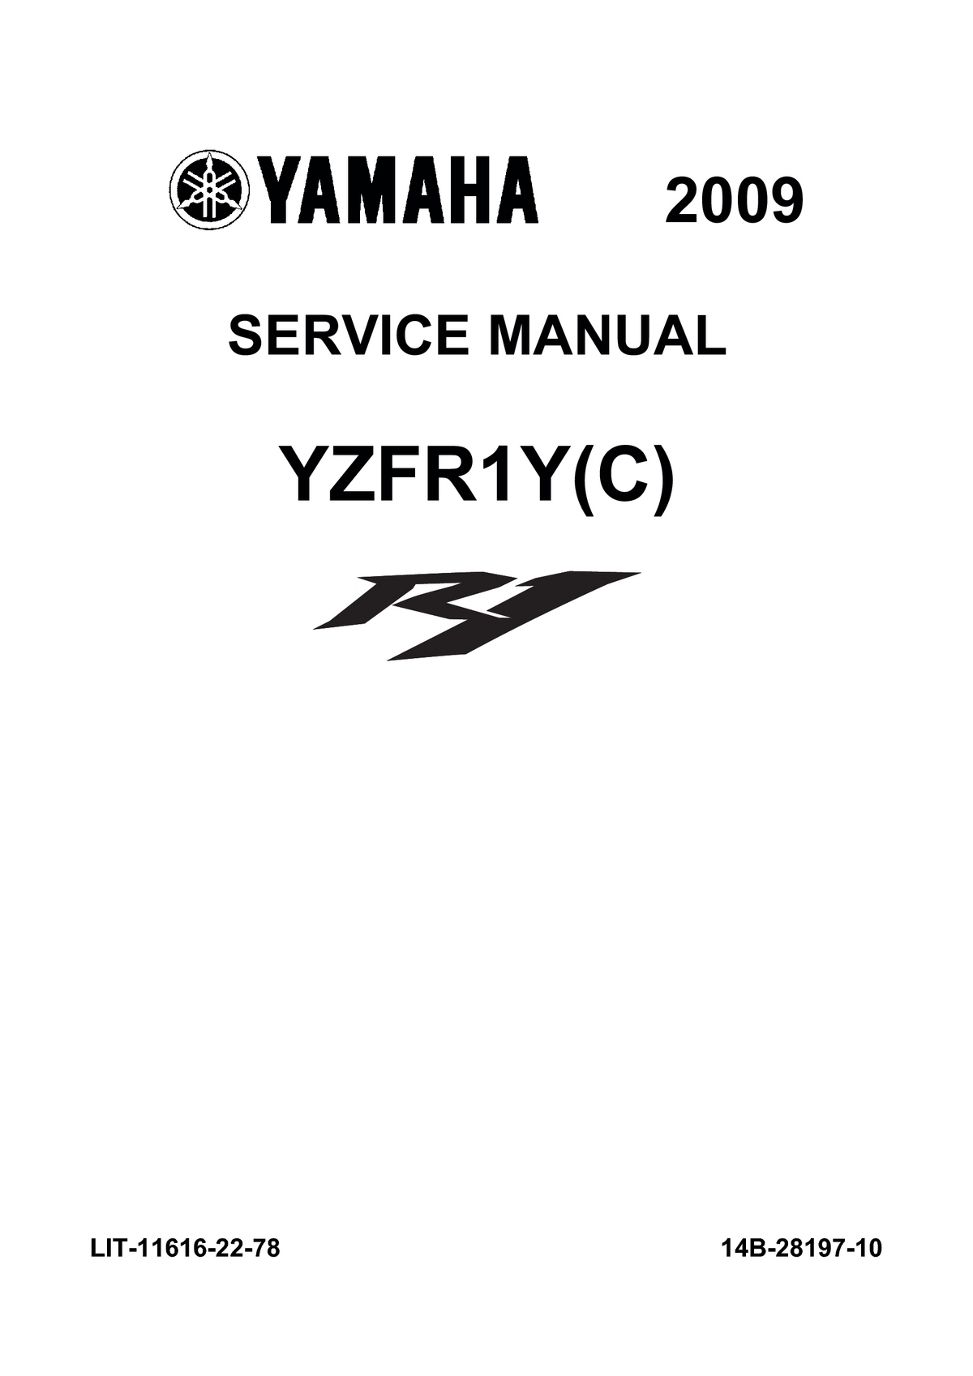 2009 YAMAHA R1 MANUAL PDF